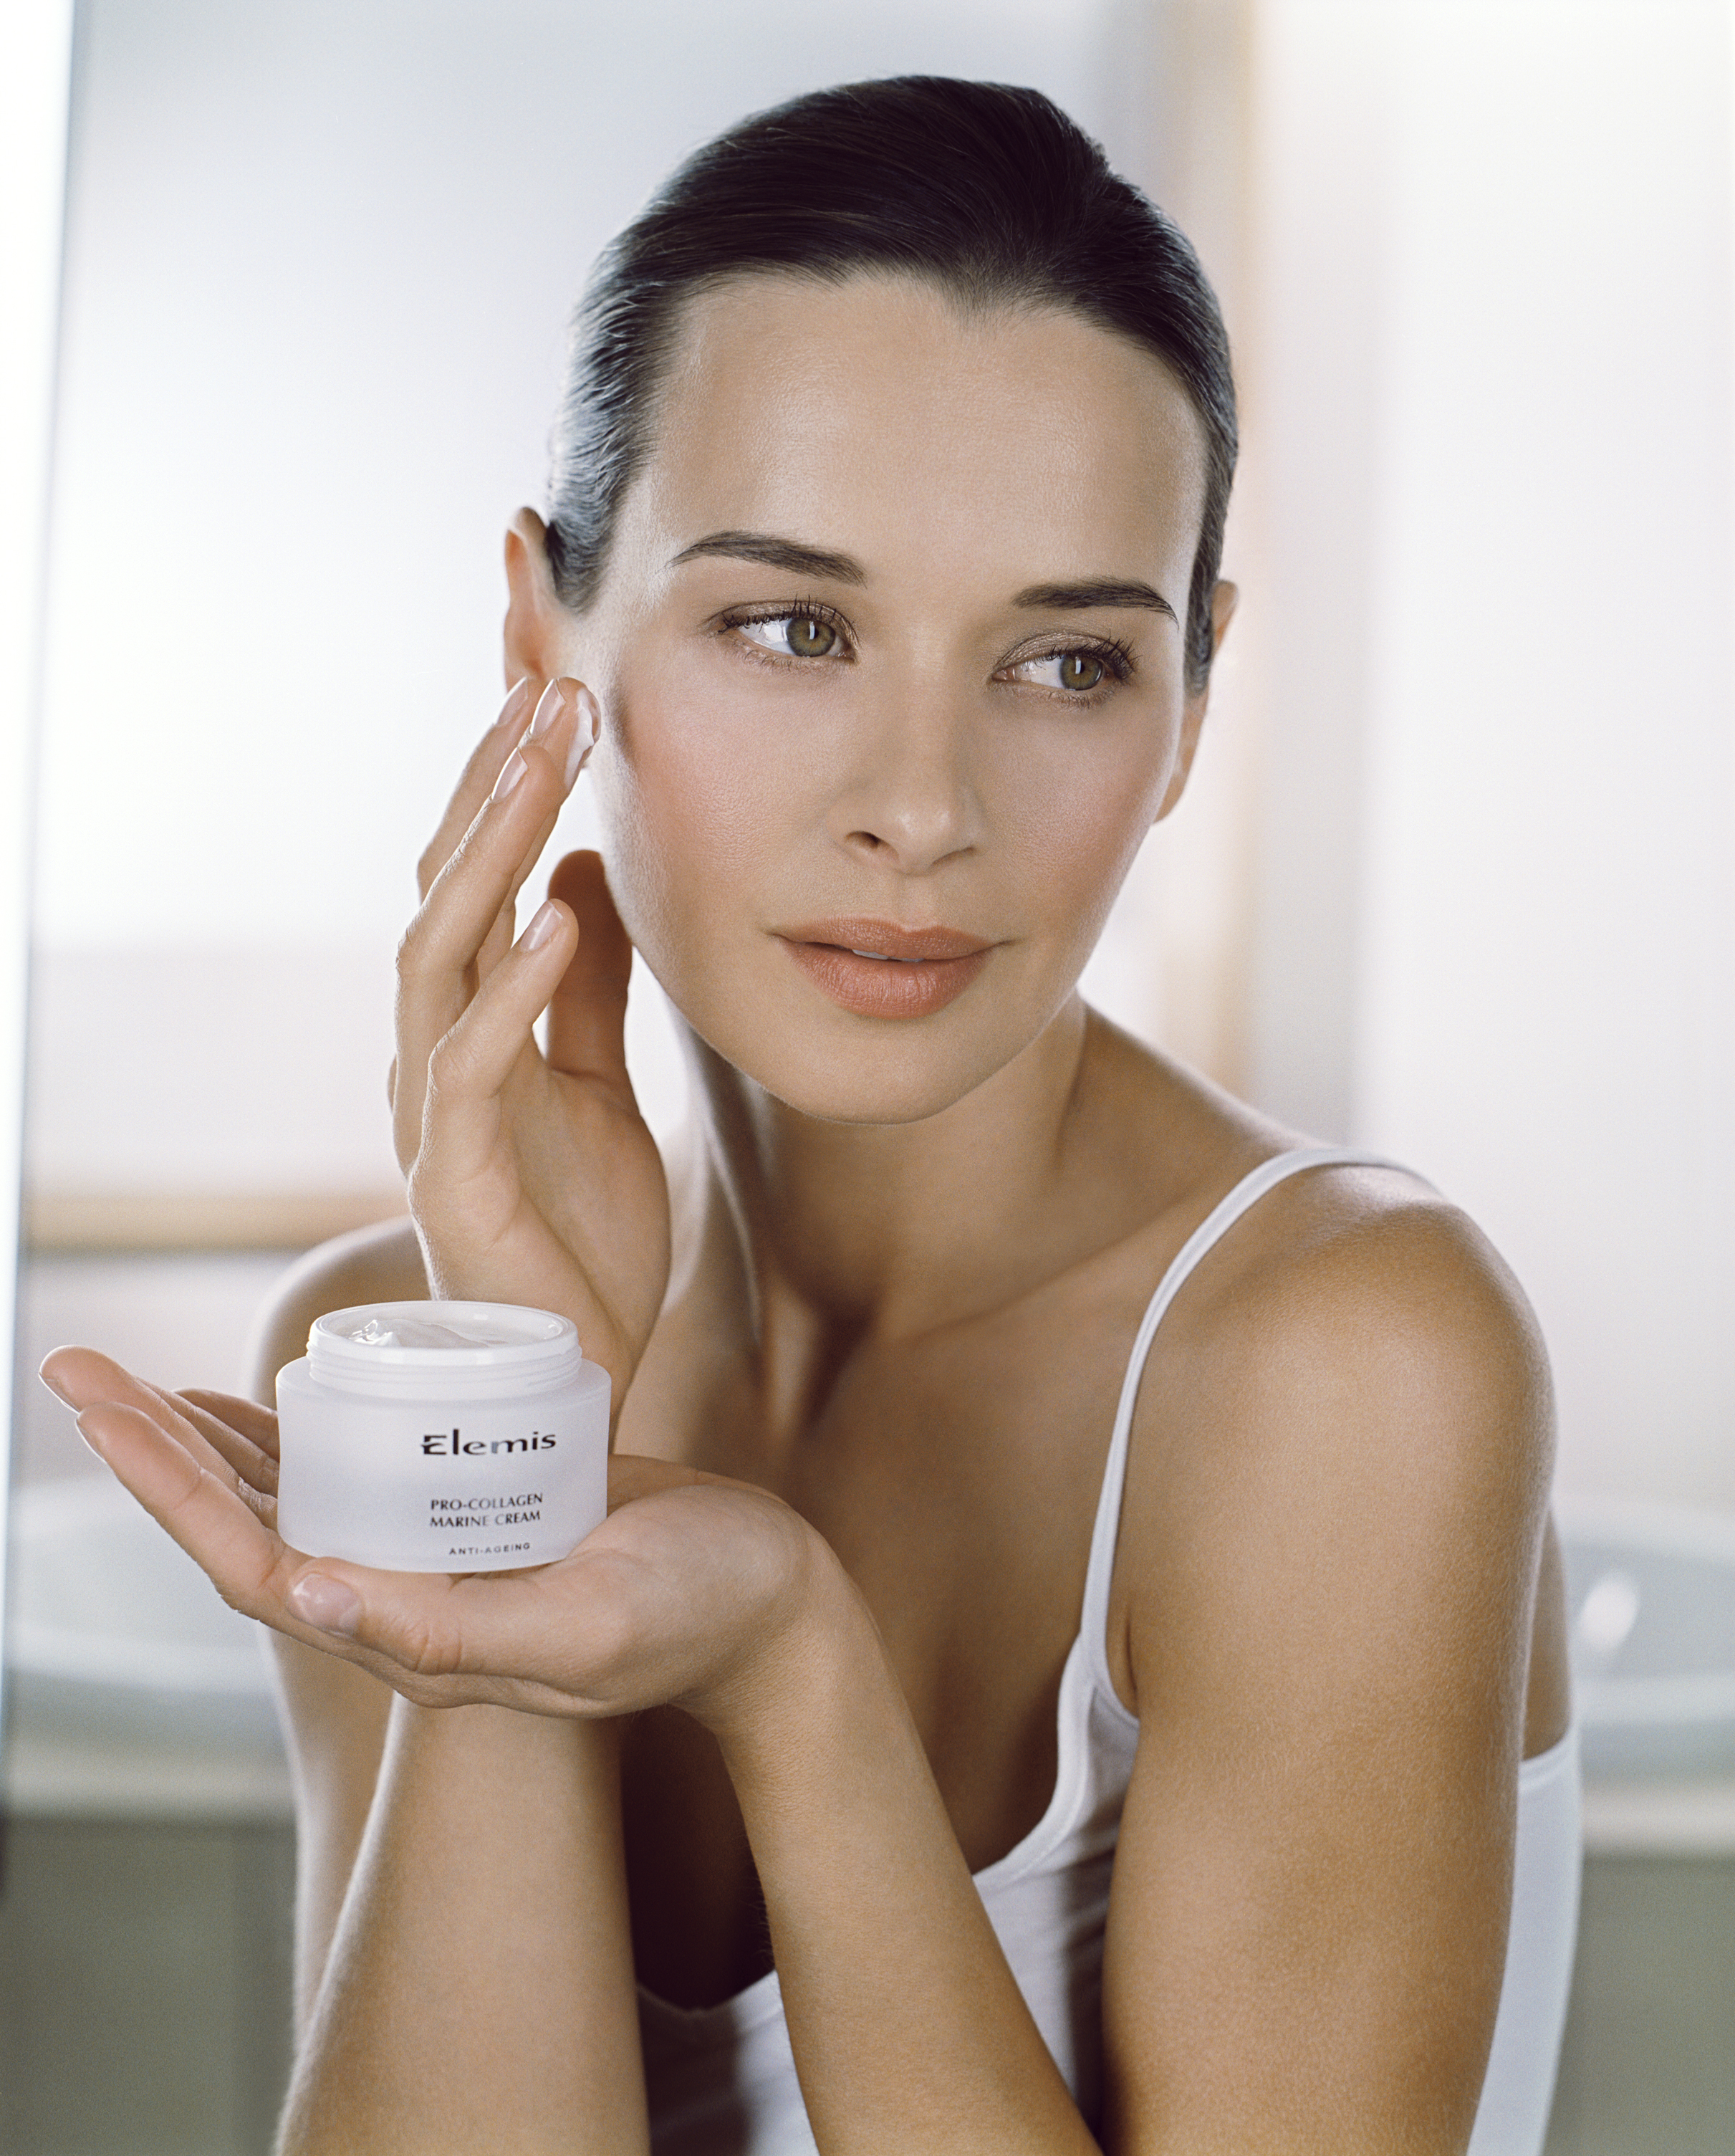 Female Holding PCMC. Model Image. JPEG. MODEL USAGE RIGHTS: This image can ONLY be used in conjunction with the ELEMIS brand. It can ONLY be used for PR, In-Store (Spas, Stockists), Limited Printed Materials, Trade Advertising and Online. It CANNOT be used for any NATIONAL ADVERTISING CAMPAIGNS. Expires: October 2016.